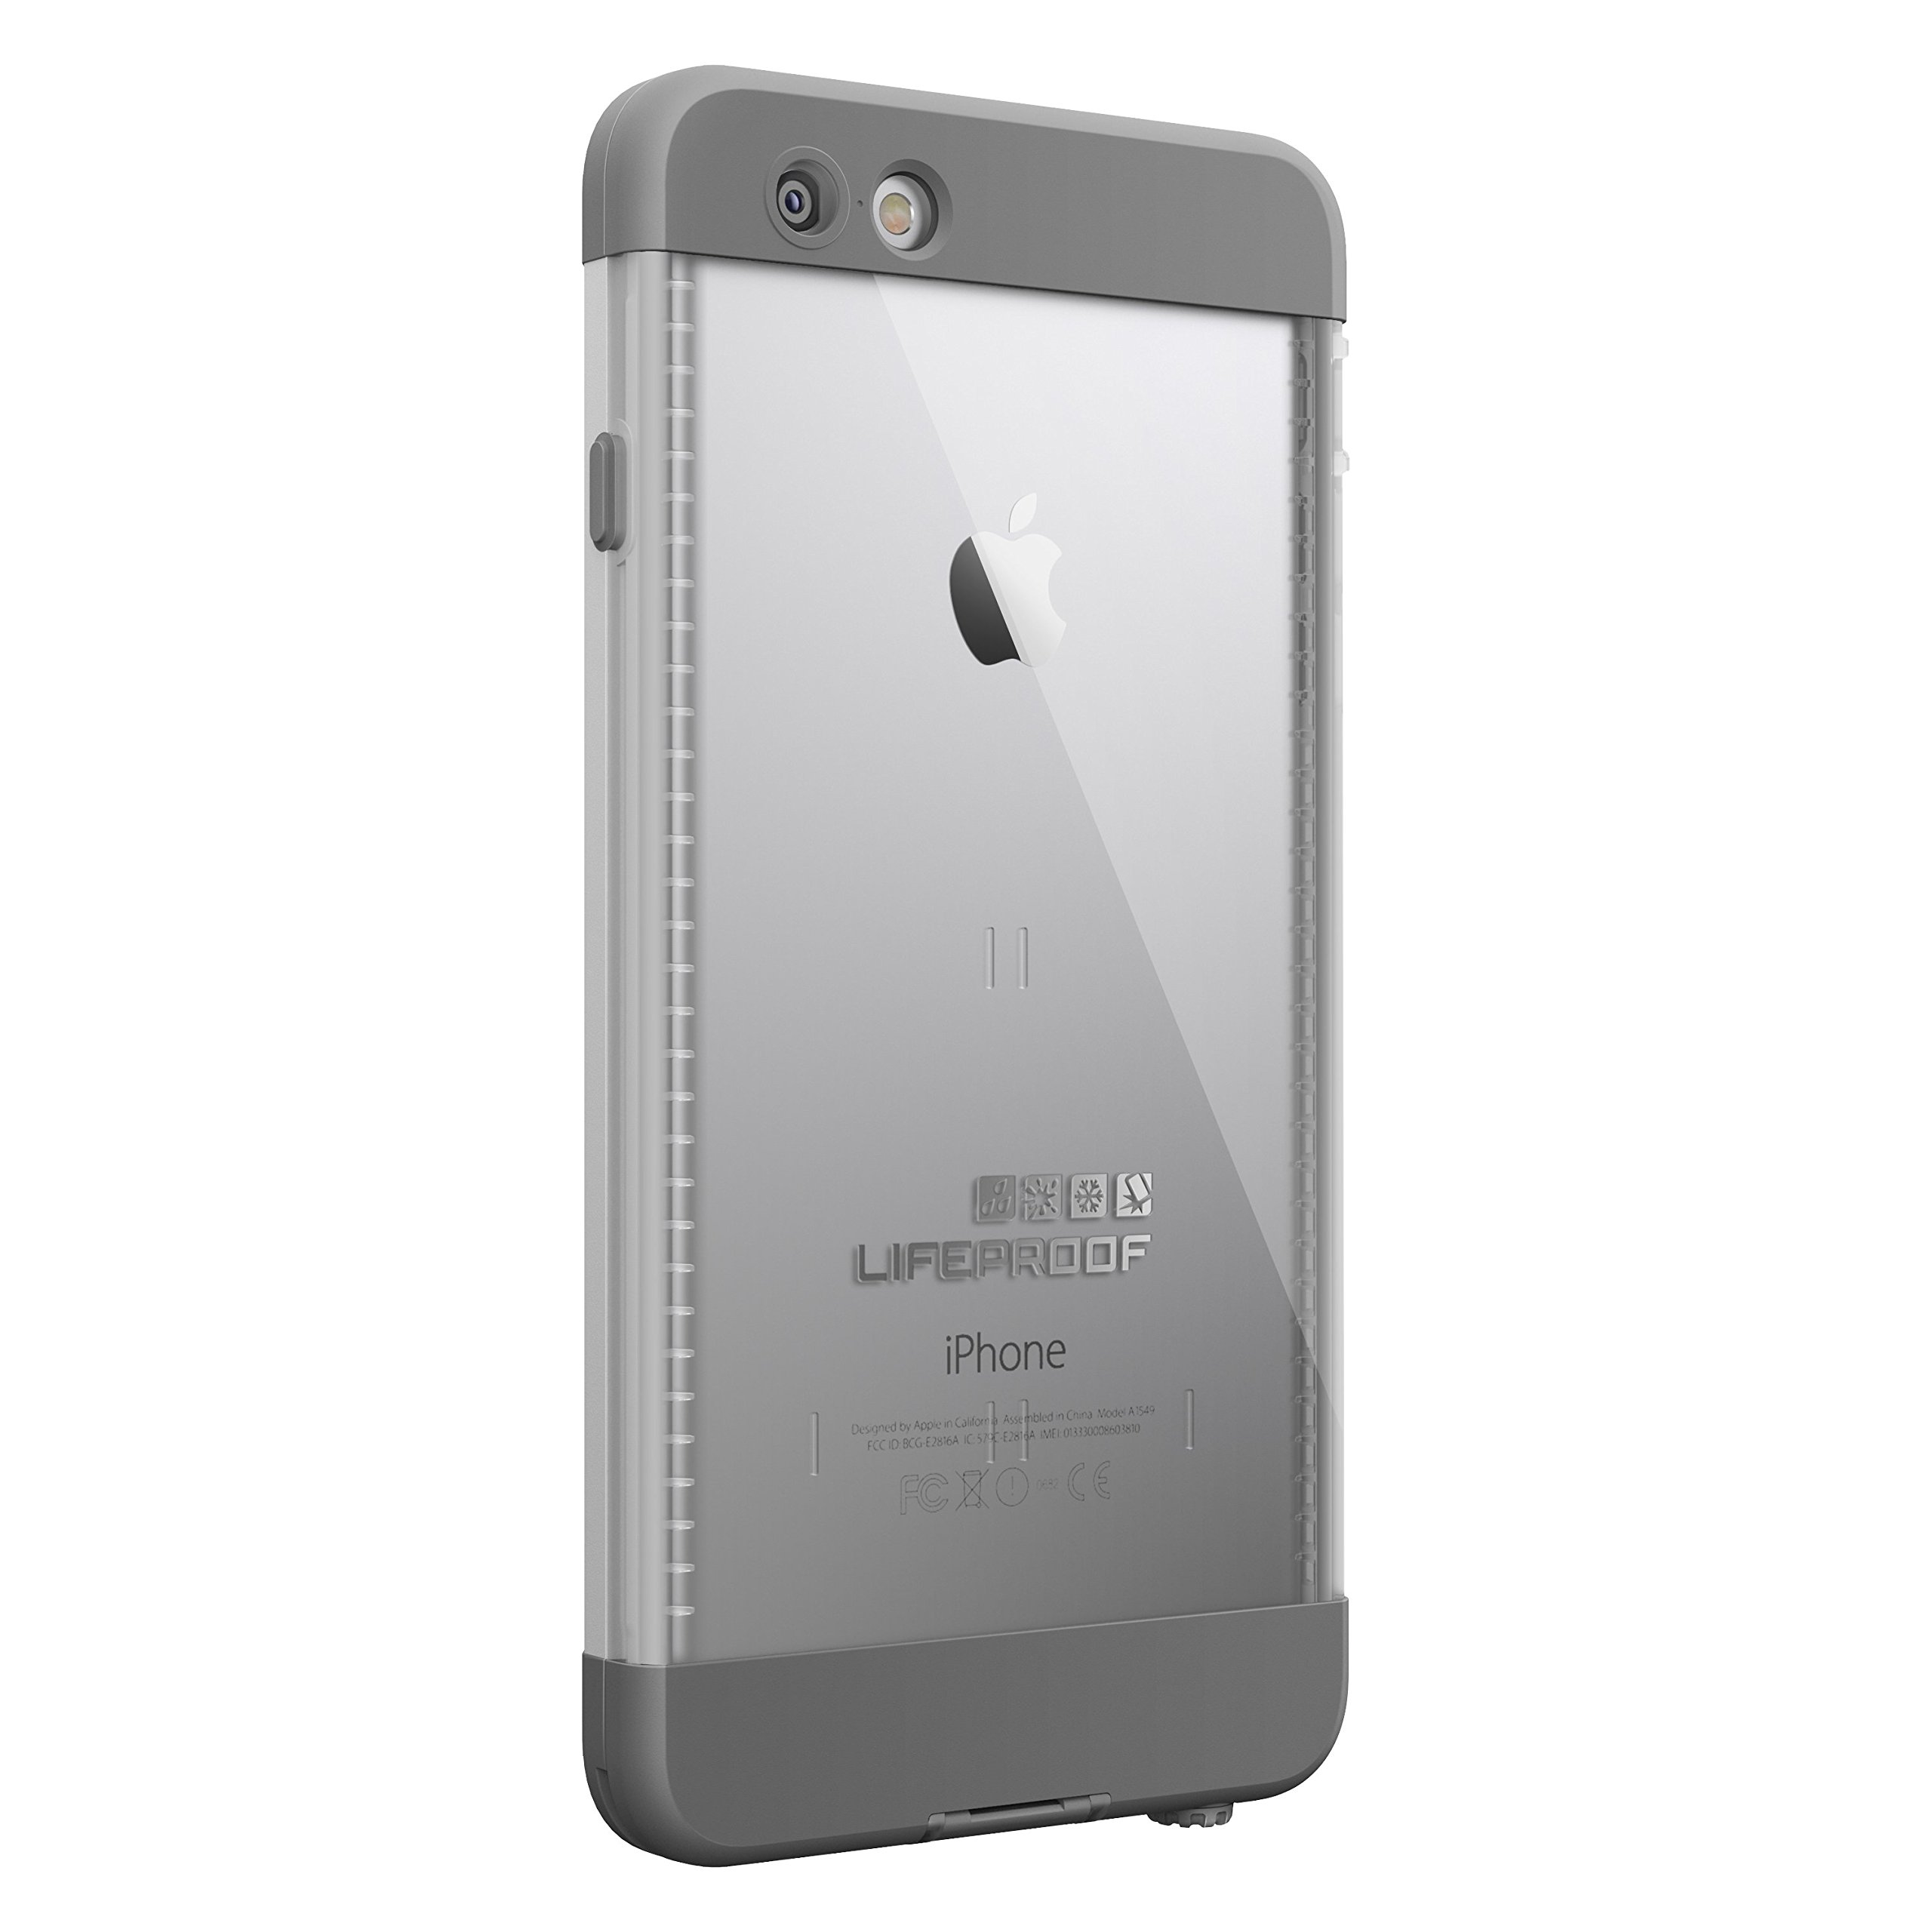 LifeProof NÜÜD iPhone 6 Plus ONLY Waterproof Case (5.5'' Version) - Retail Packaging - AVALANCHE (BRIGHT WHITE/COOL GREY) by LifeProof (Image #2)